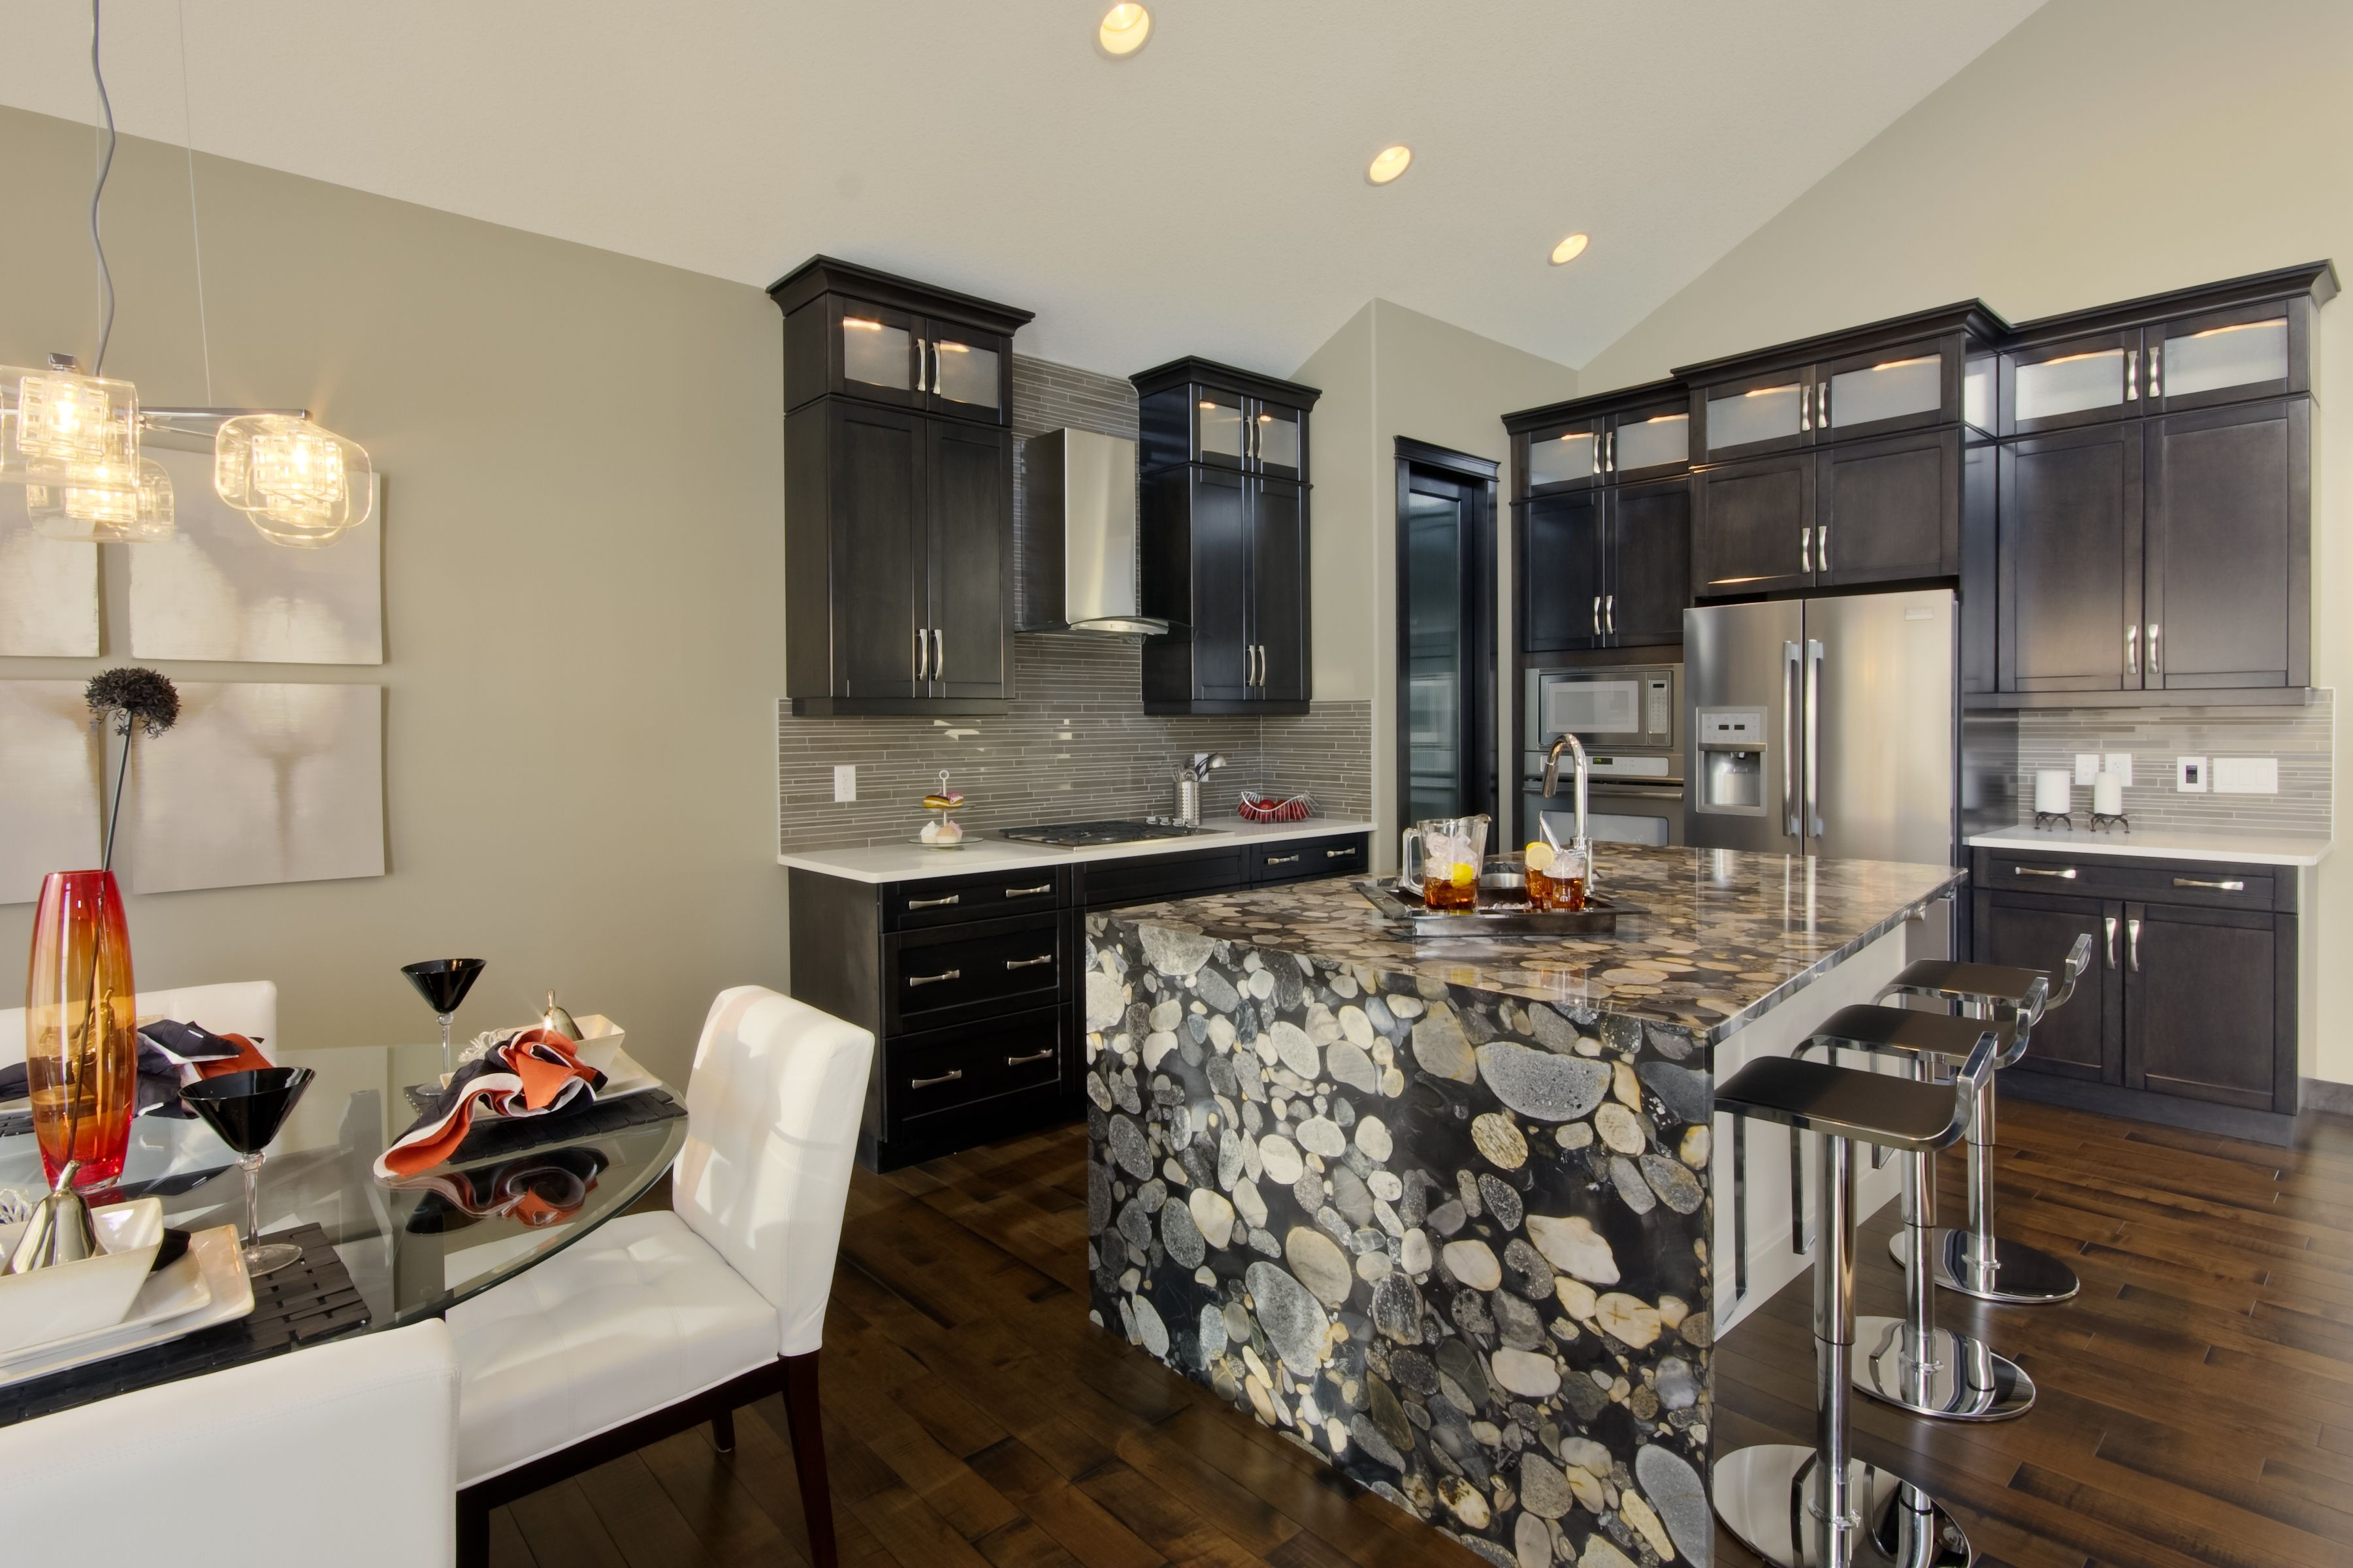 Natural stone granite countertop with waterfall down one side of